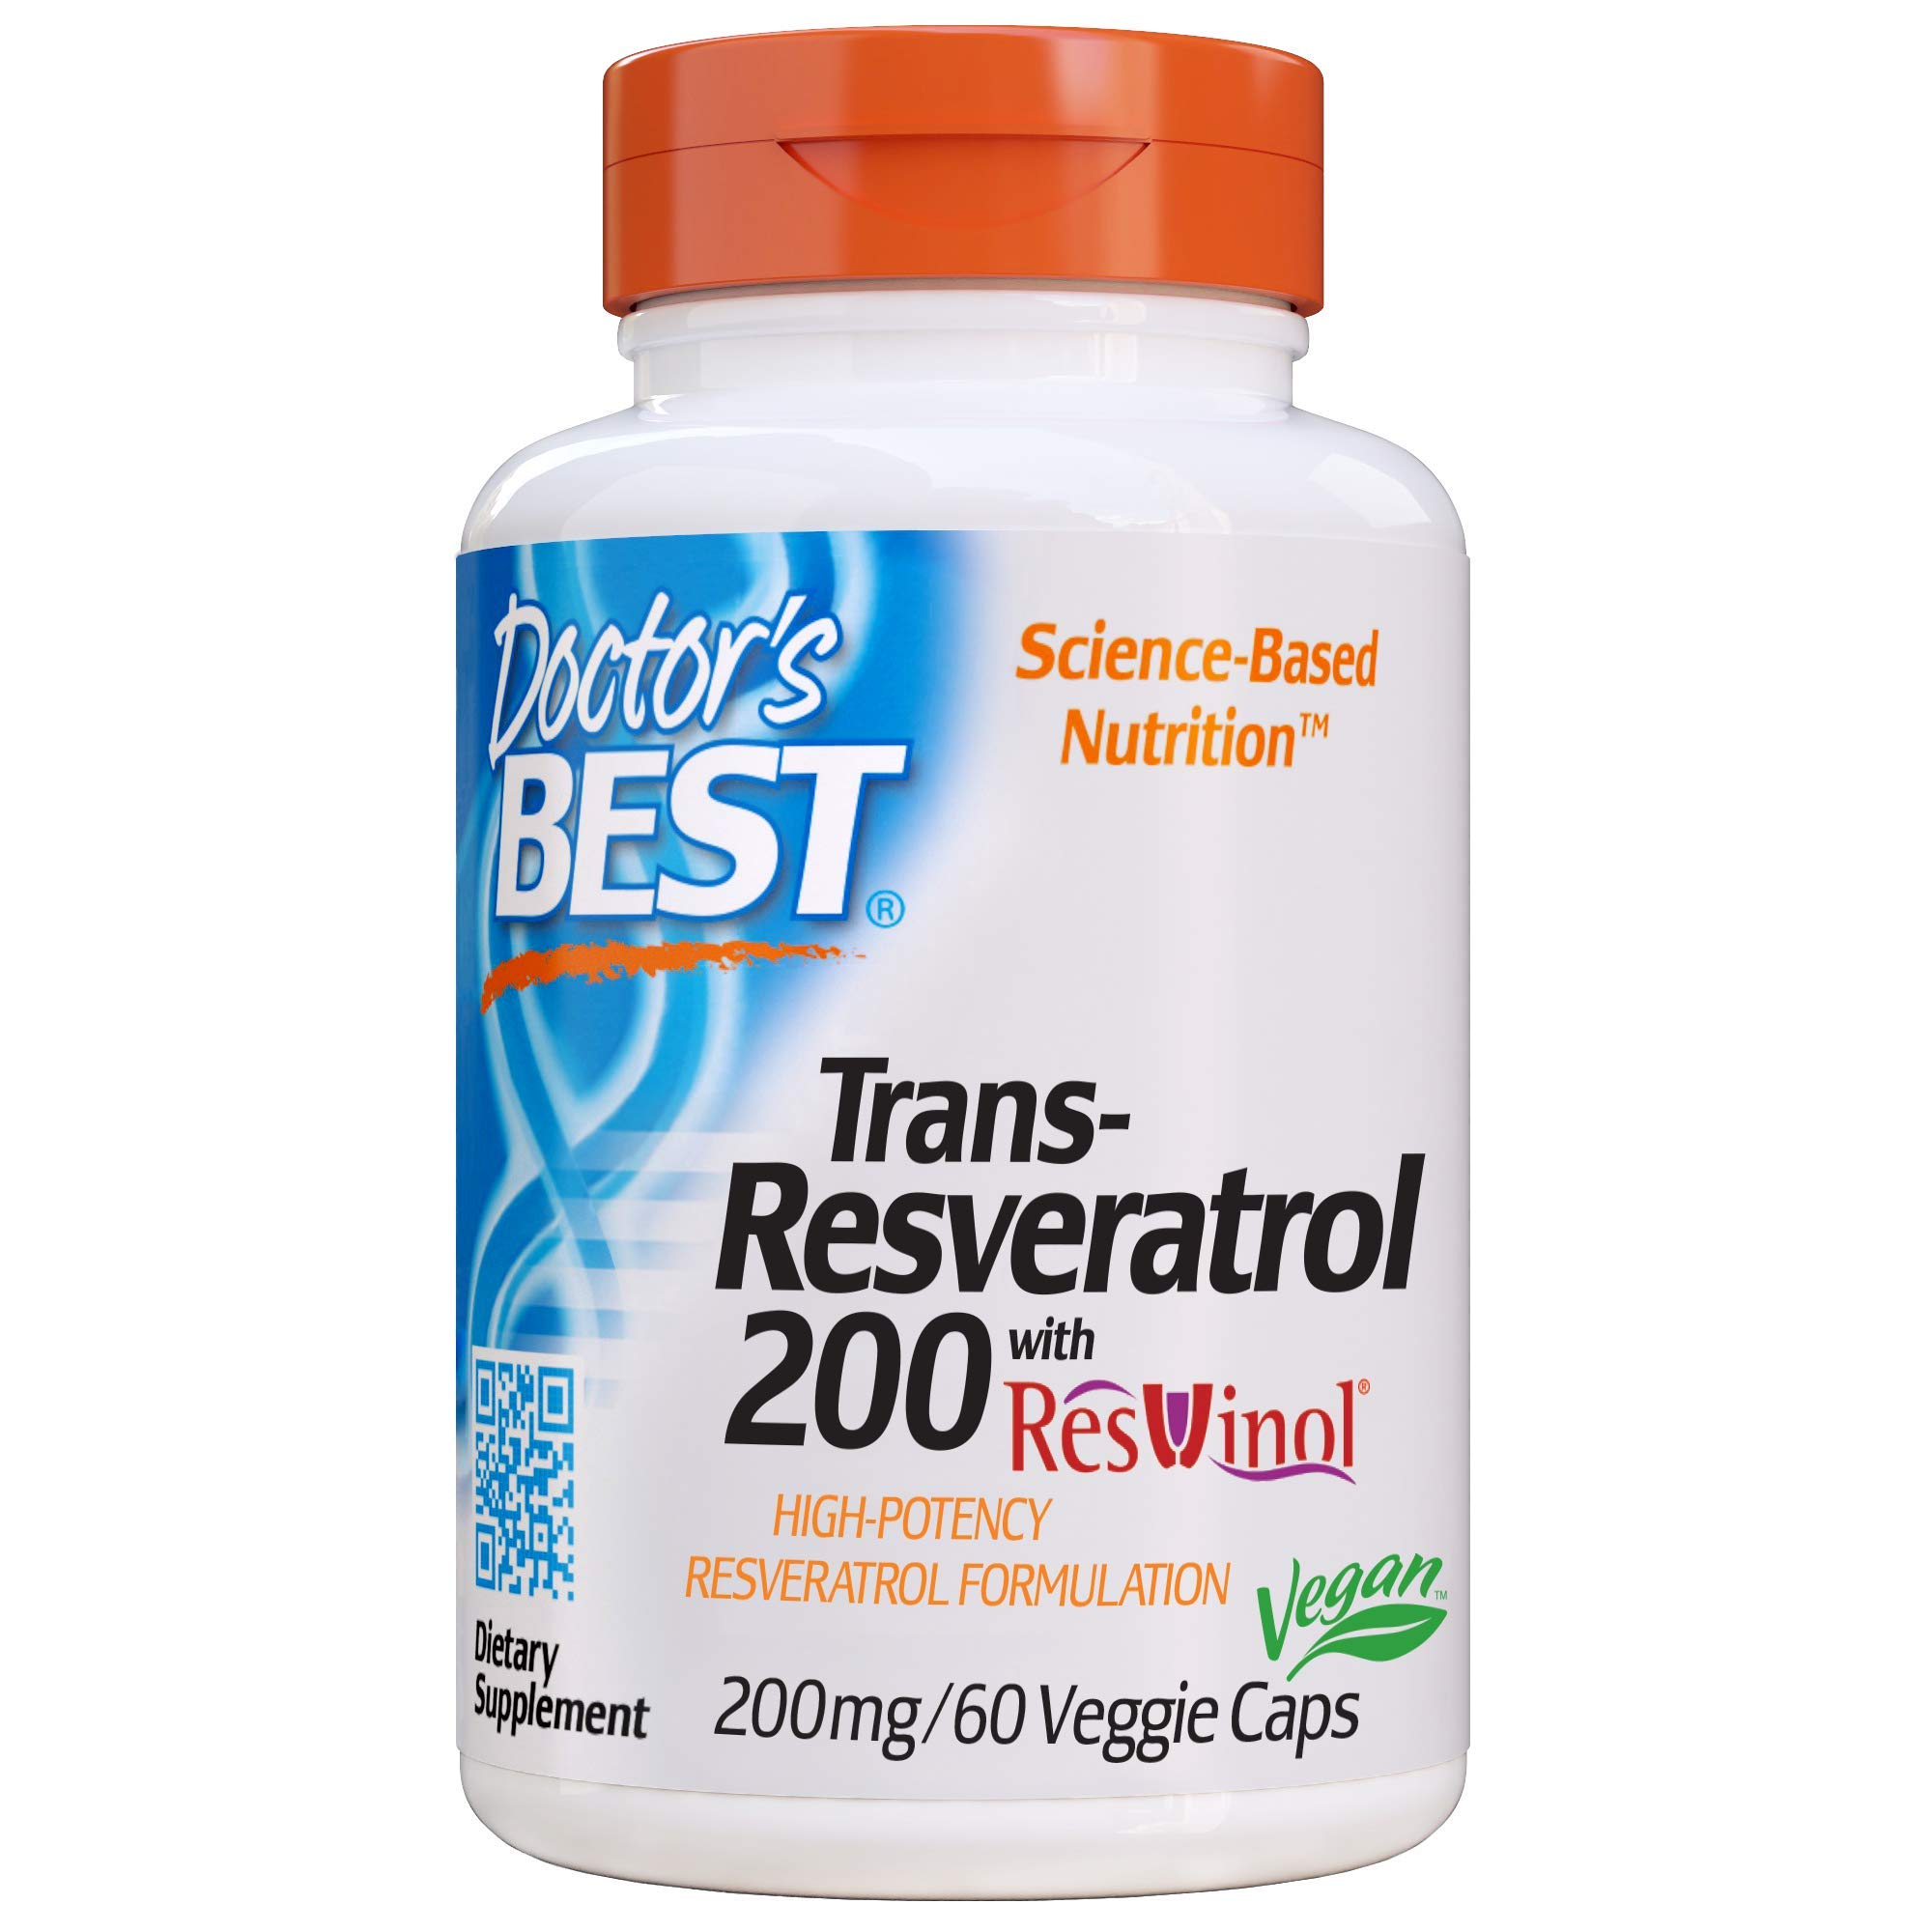 Doctor's Best, Trans-Resveratrol with ResVinol, Non-GMO, Vegan, Gluten Free, Soy Free, 200 mg, 60 Veggie Caps by Doctor's Best